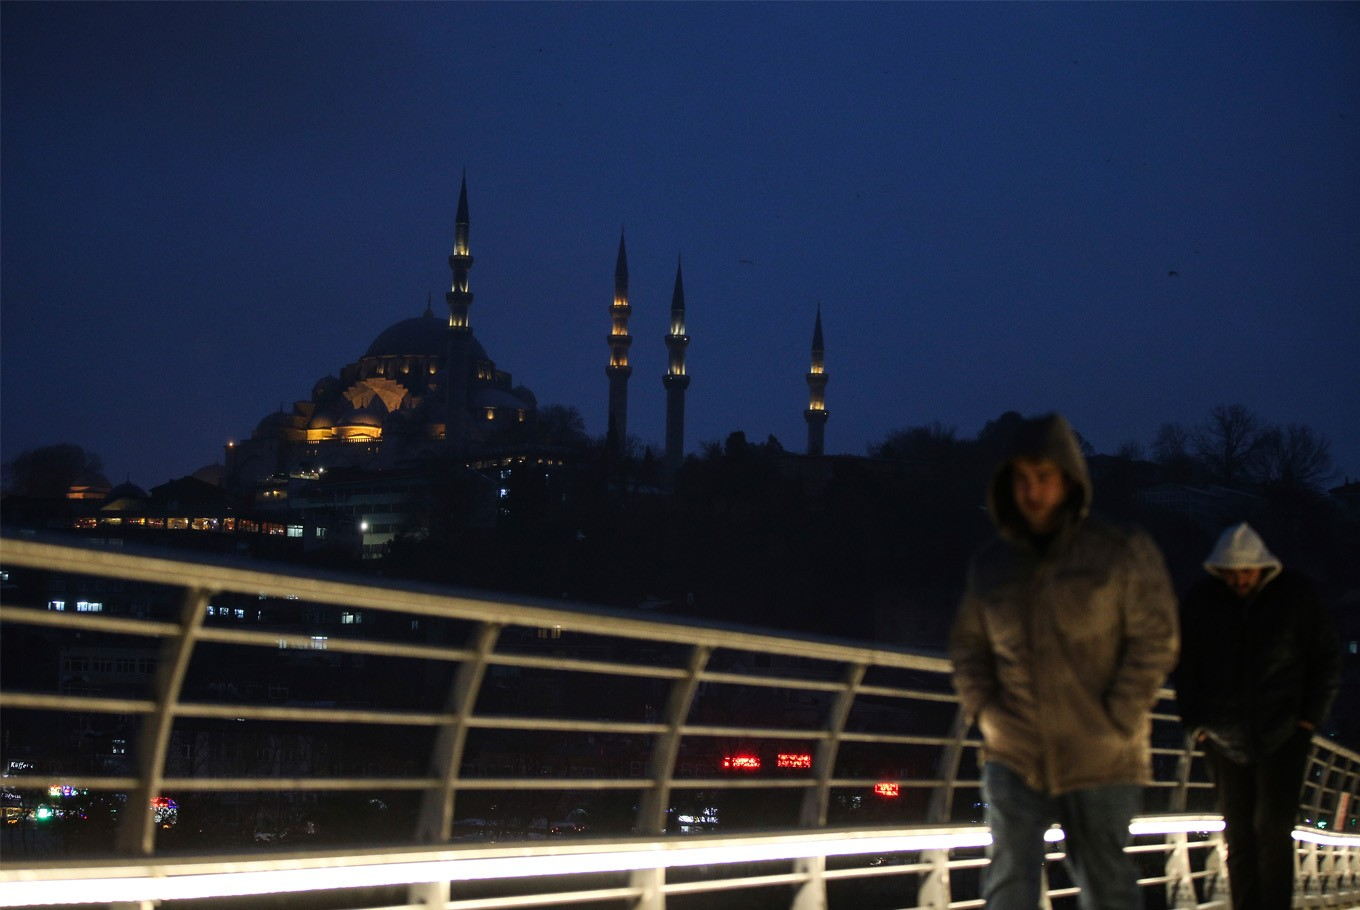 Turkey's tourism takes big hit after extremist attacks